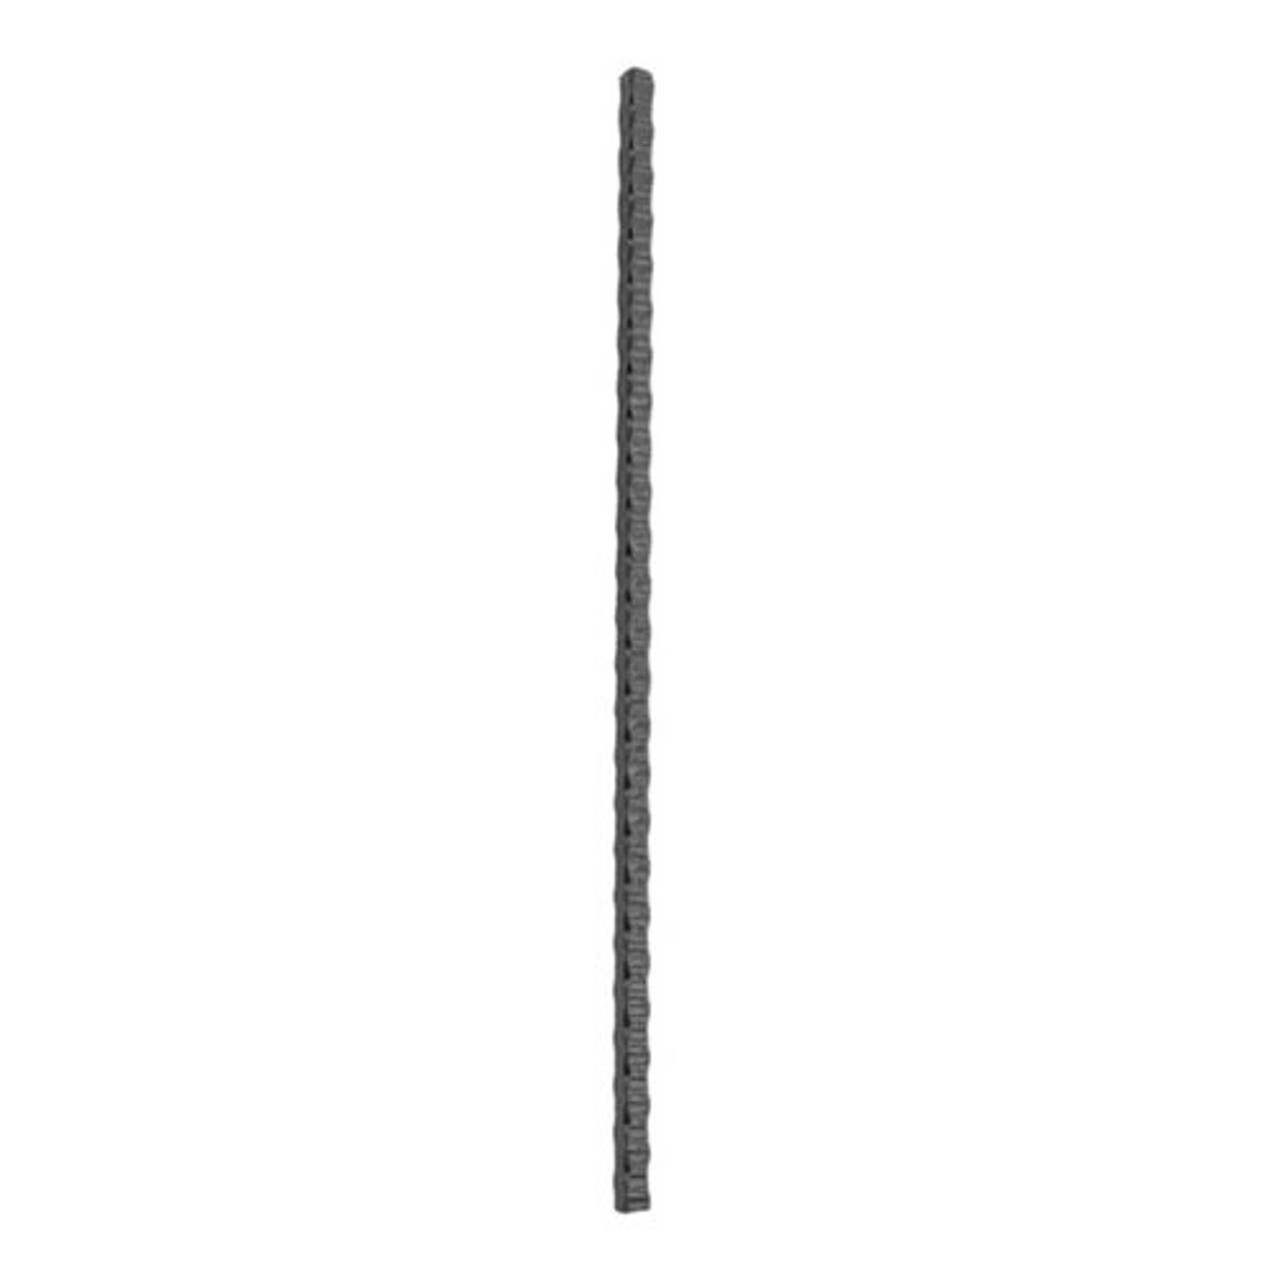 PC56/1 Hammered Newel Post 1 3/16-inch square